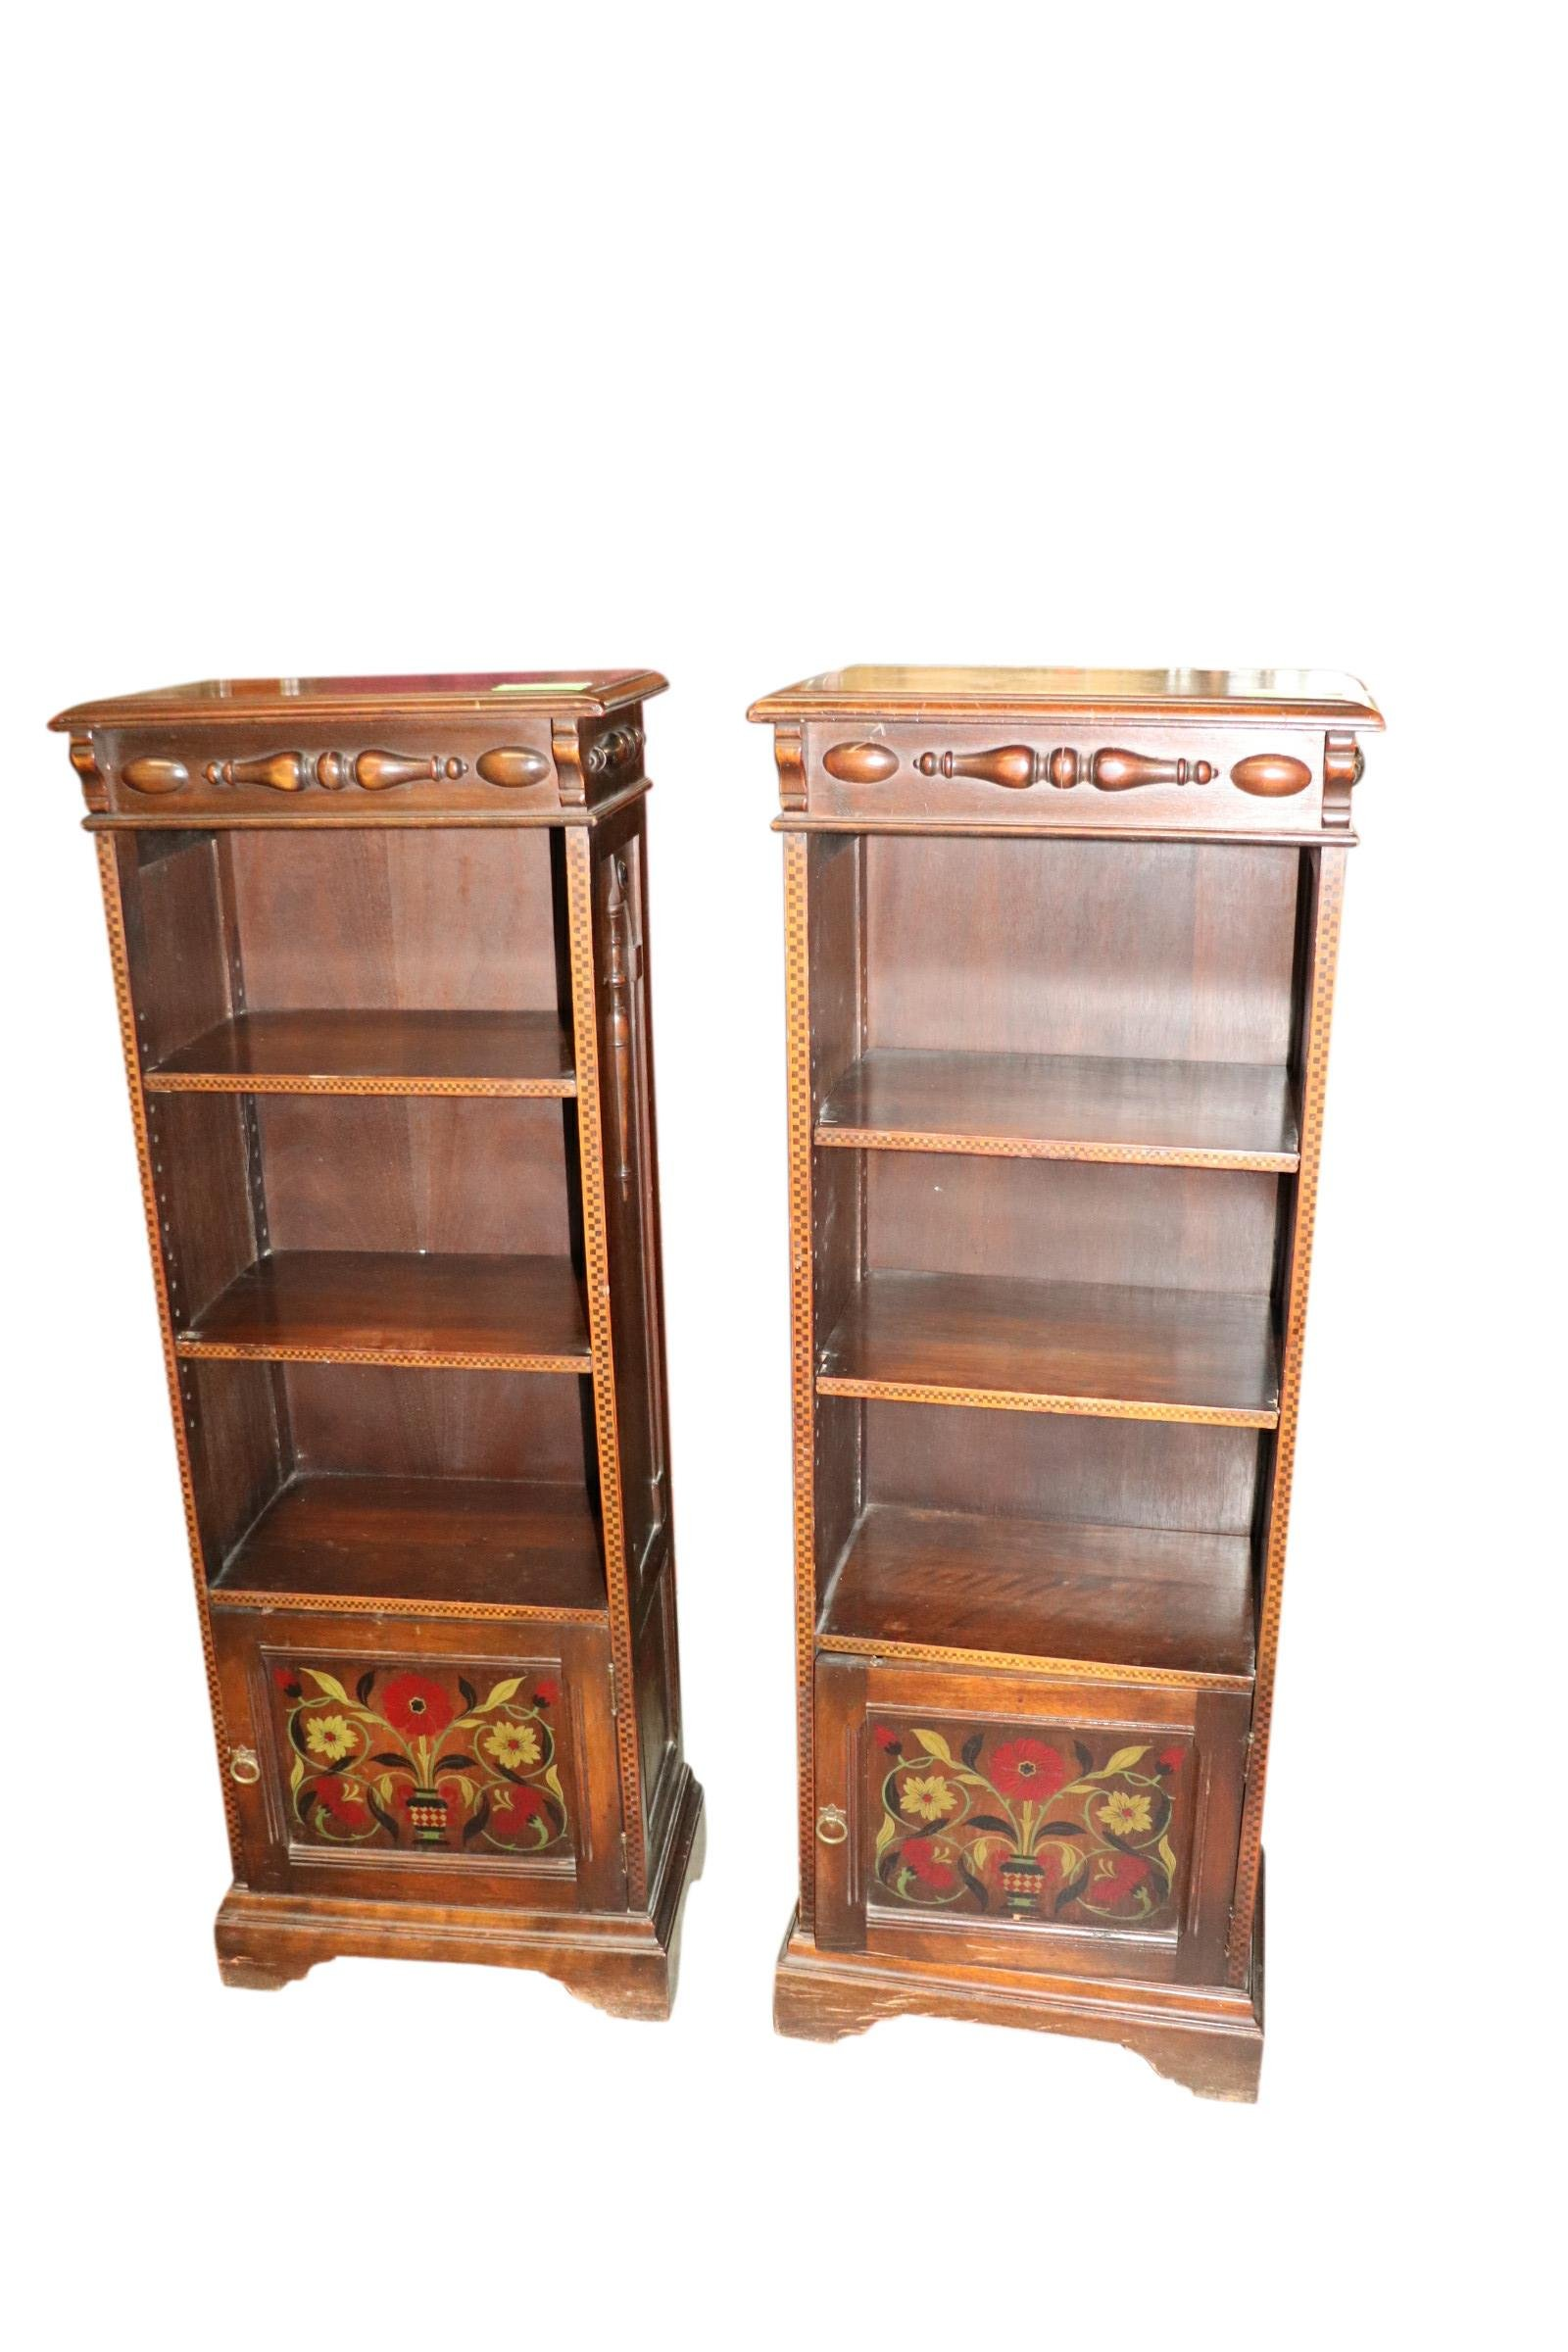 PAIR OF ANTIQUE INLAID PAINTED KITTINGER